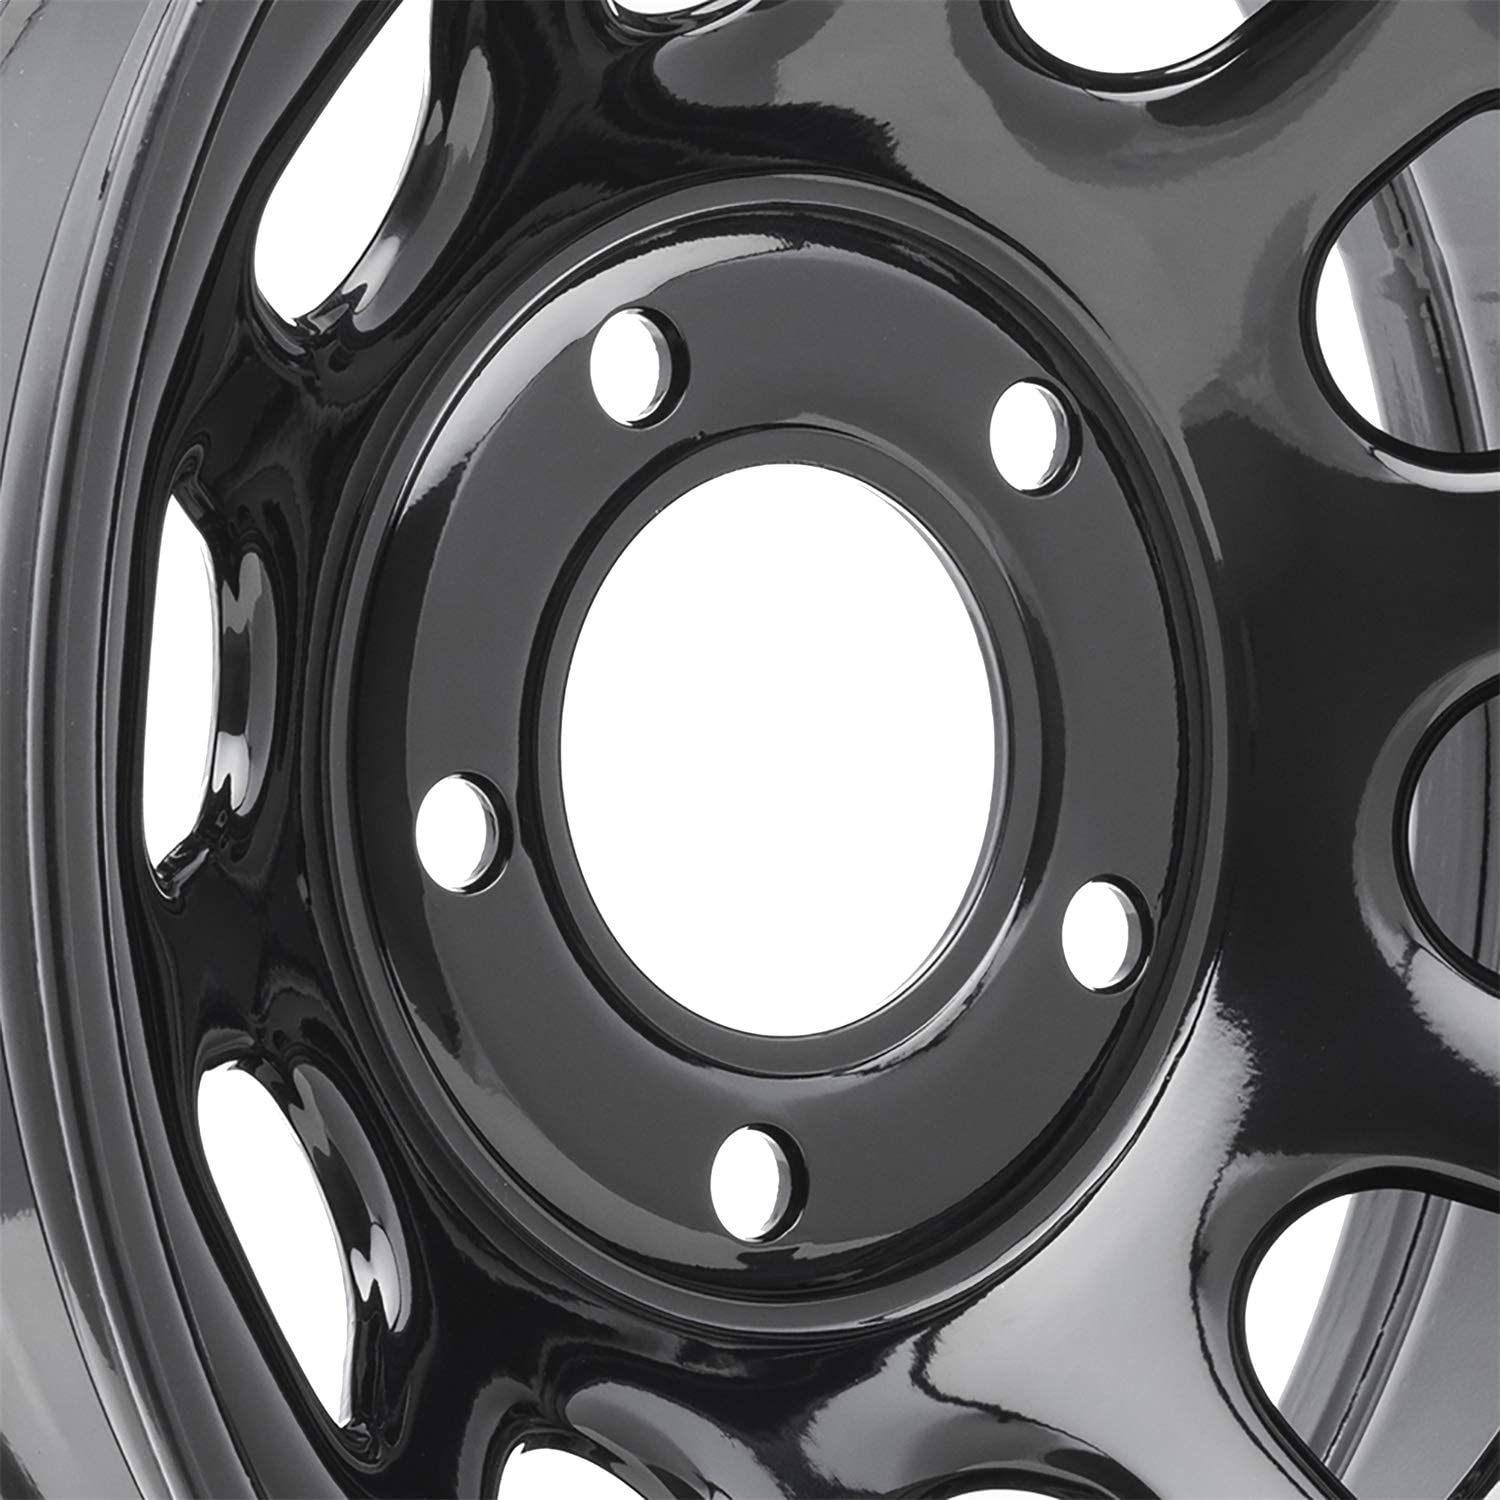 Pro Comp Steel Wheels Series 51 Wheel with Gloss Black Finish